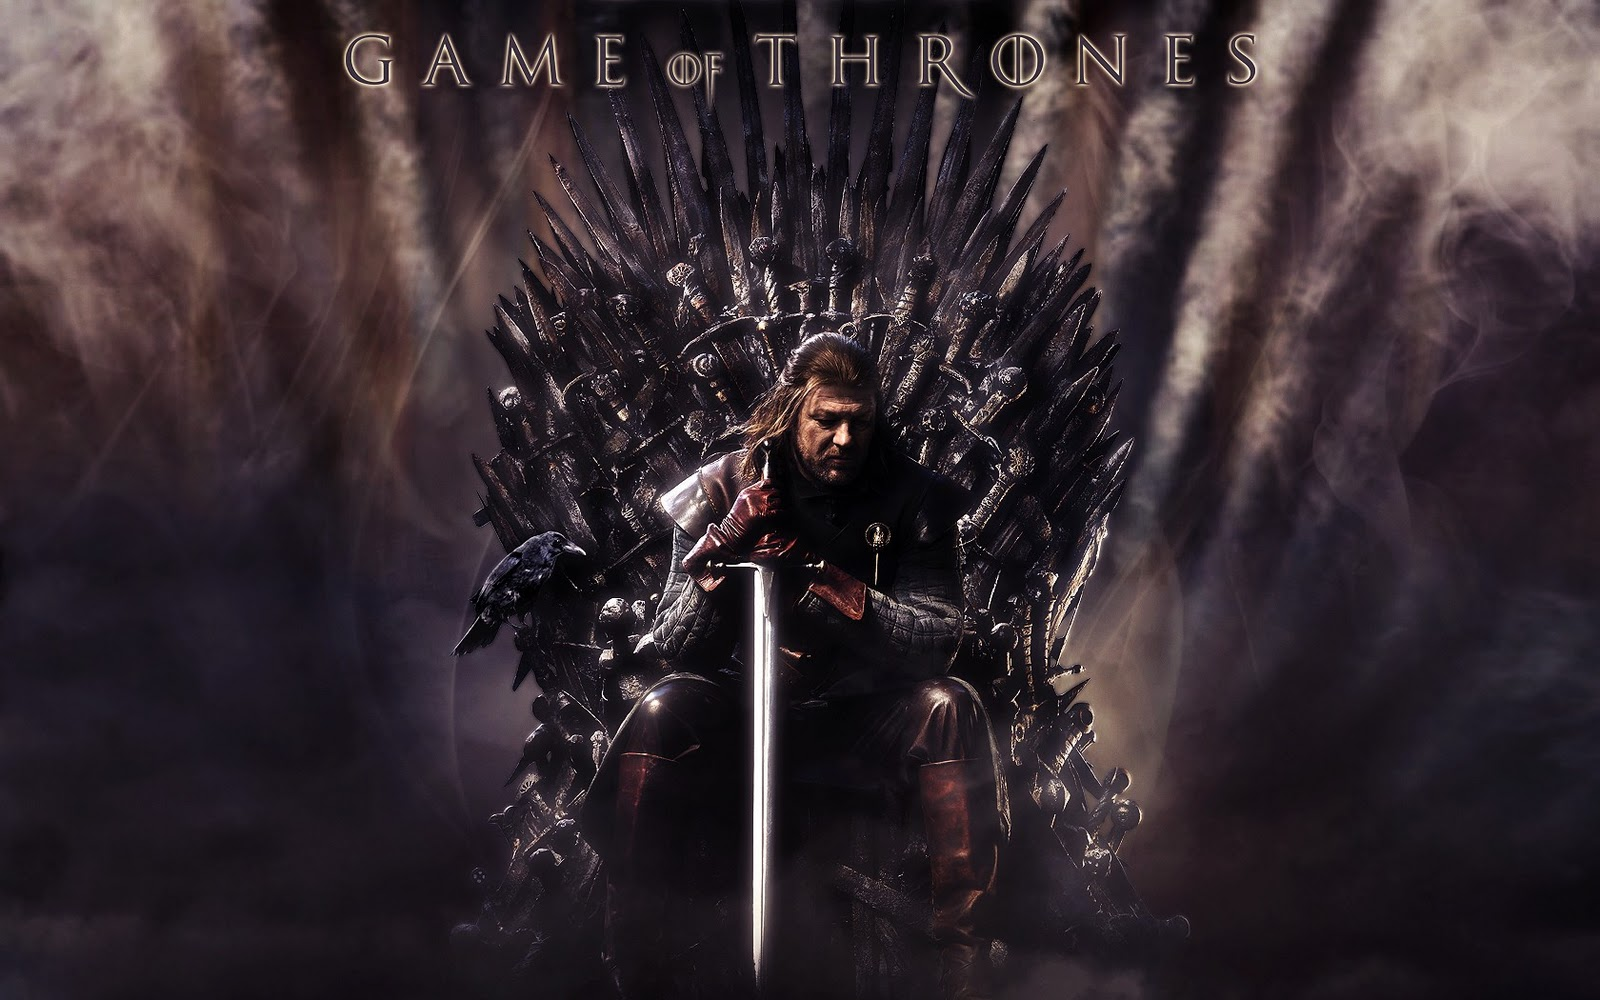 eyesurfing: game of thrones wallpaper from tv series